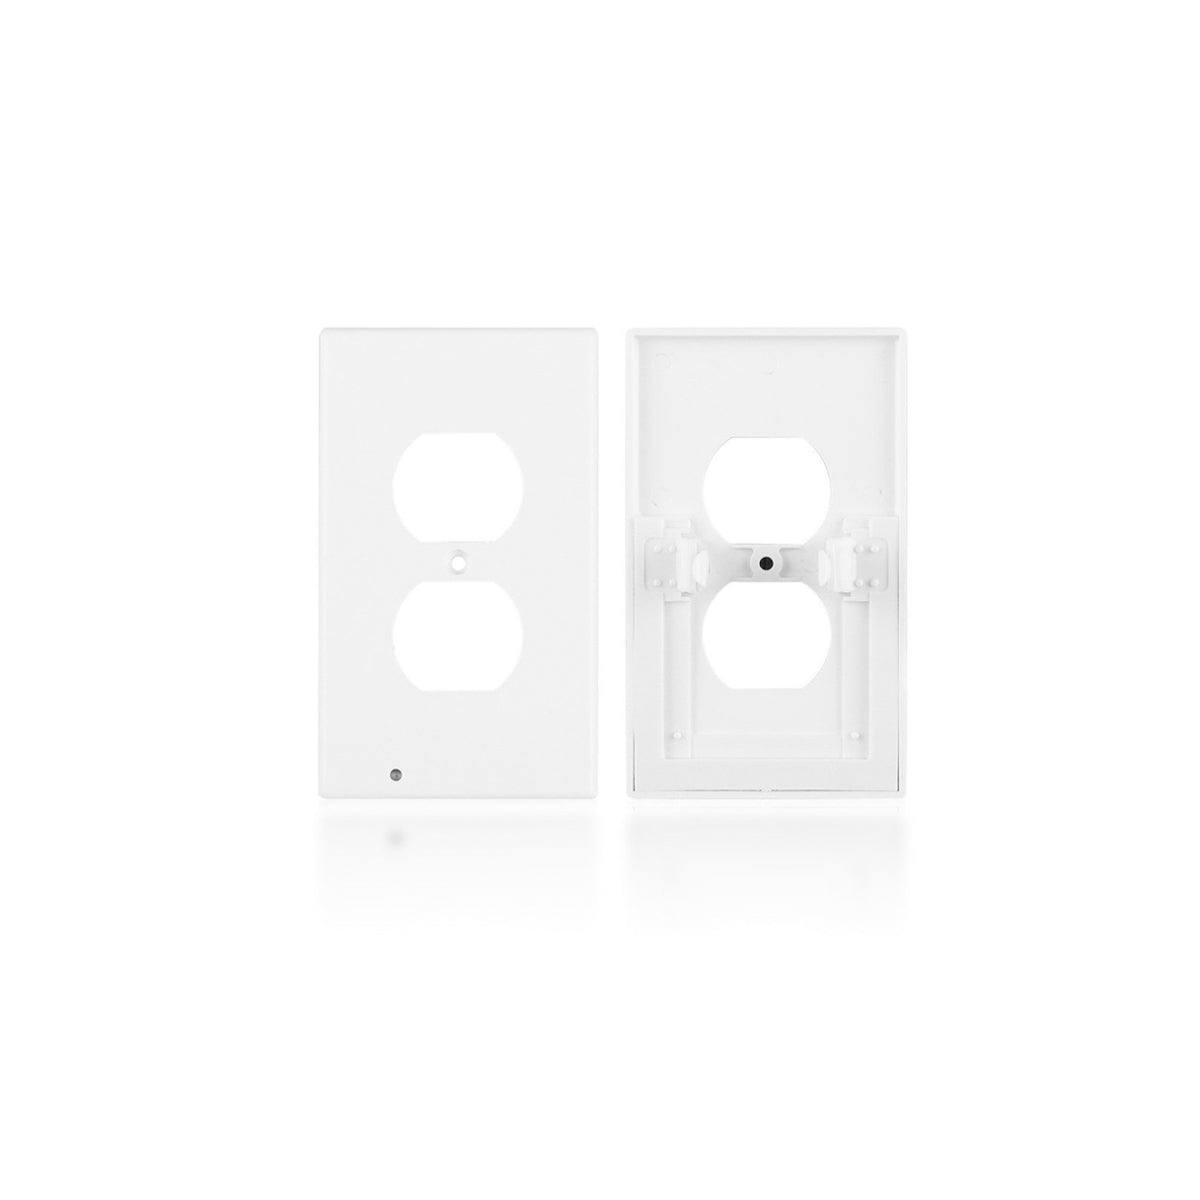 shopify-Path Lighter Auto Motion Wall Plate LED Light  2- PACK-11